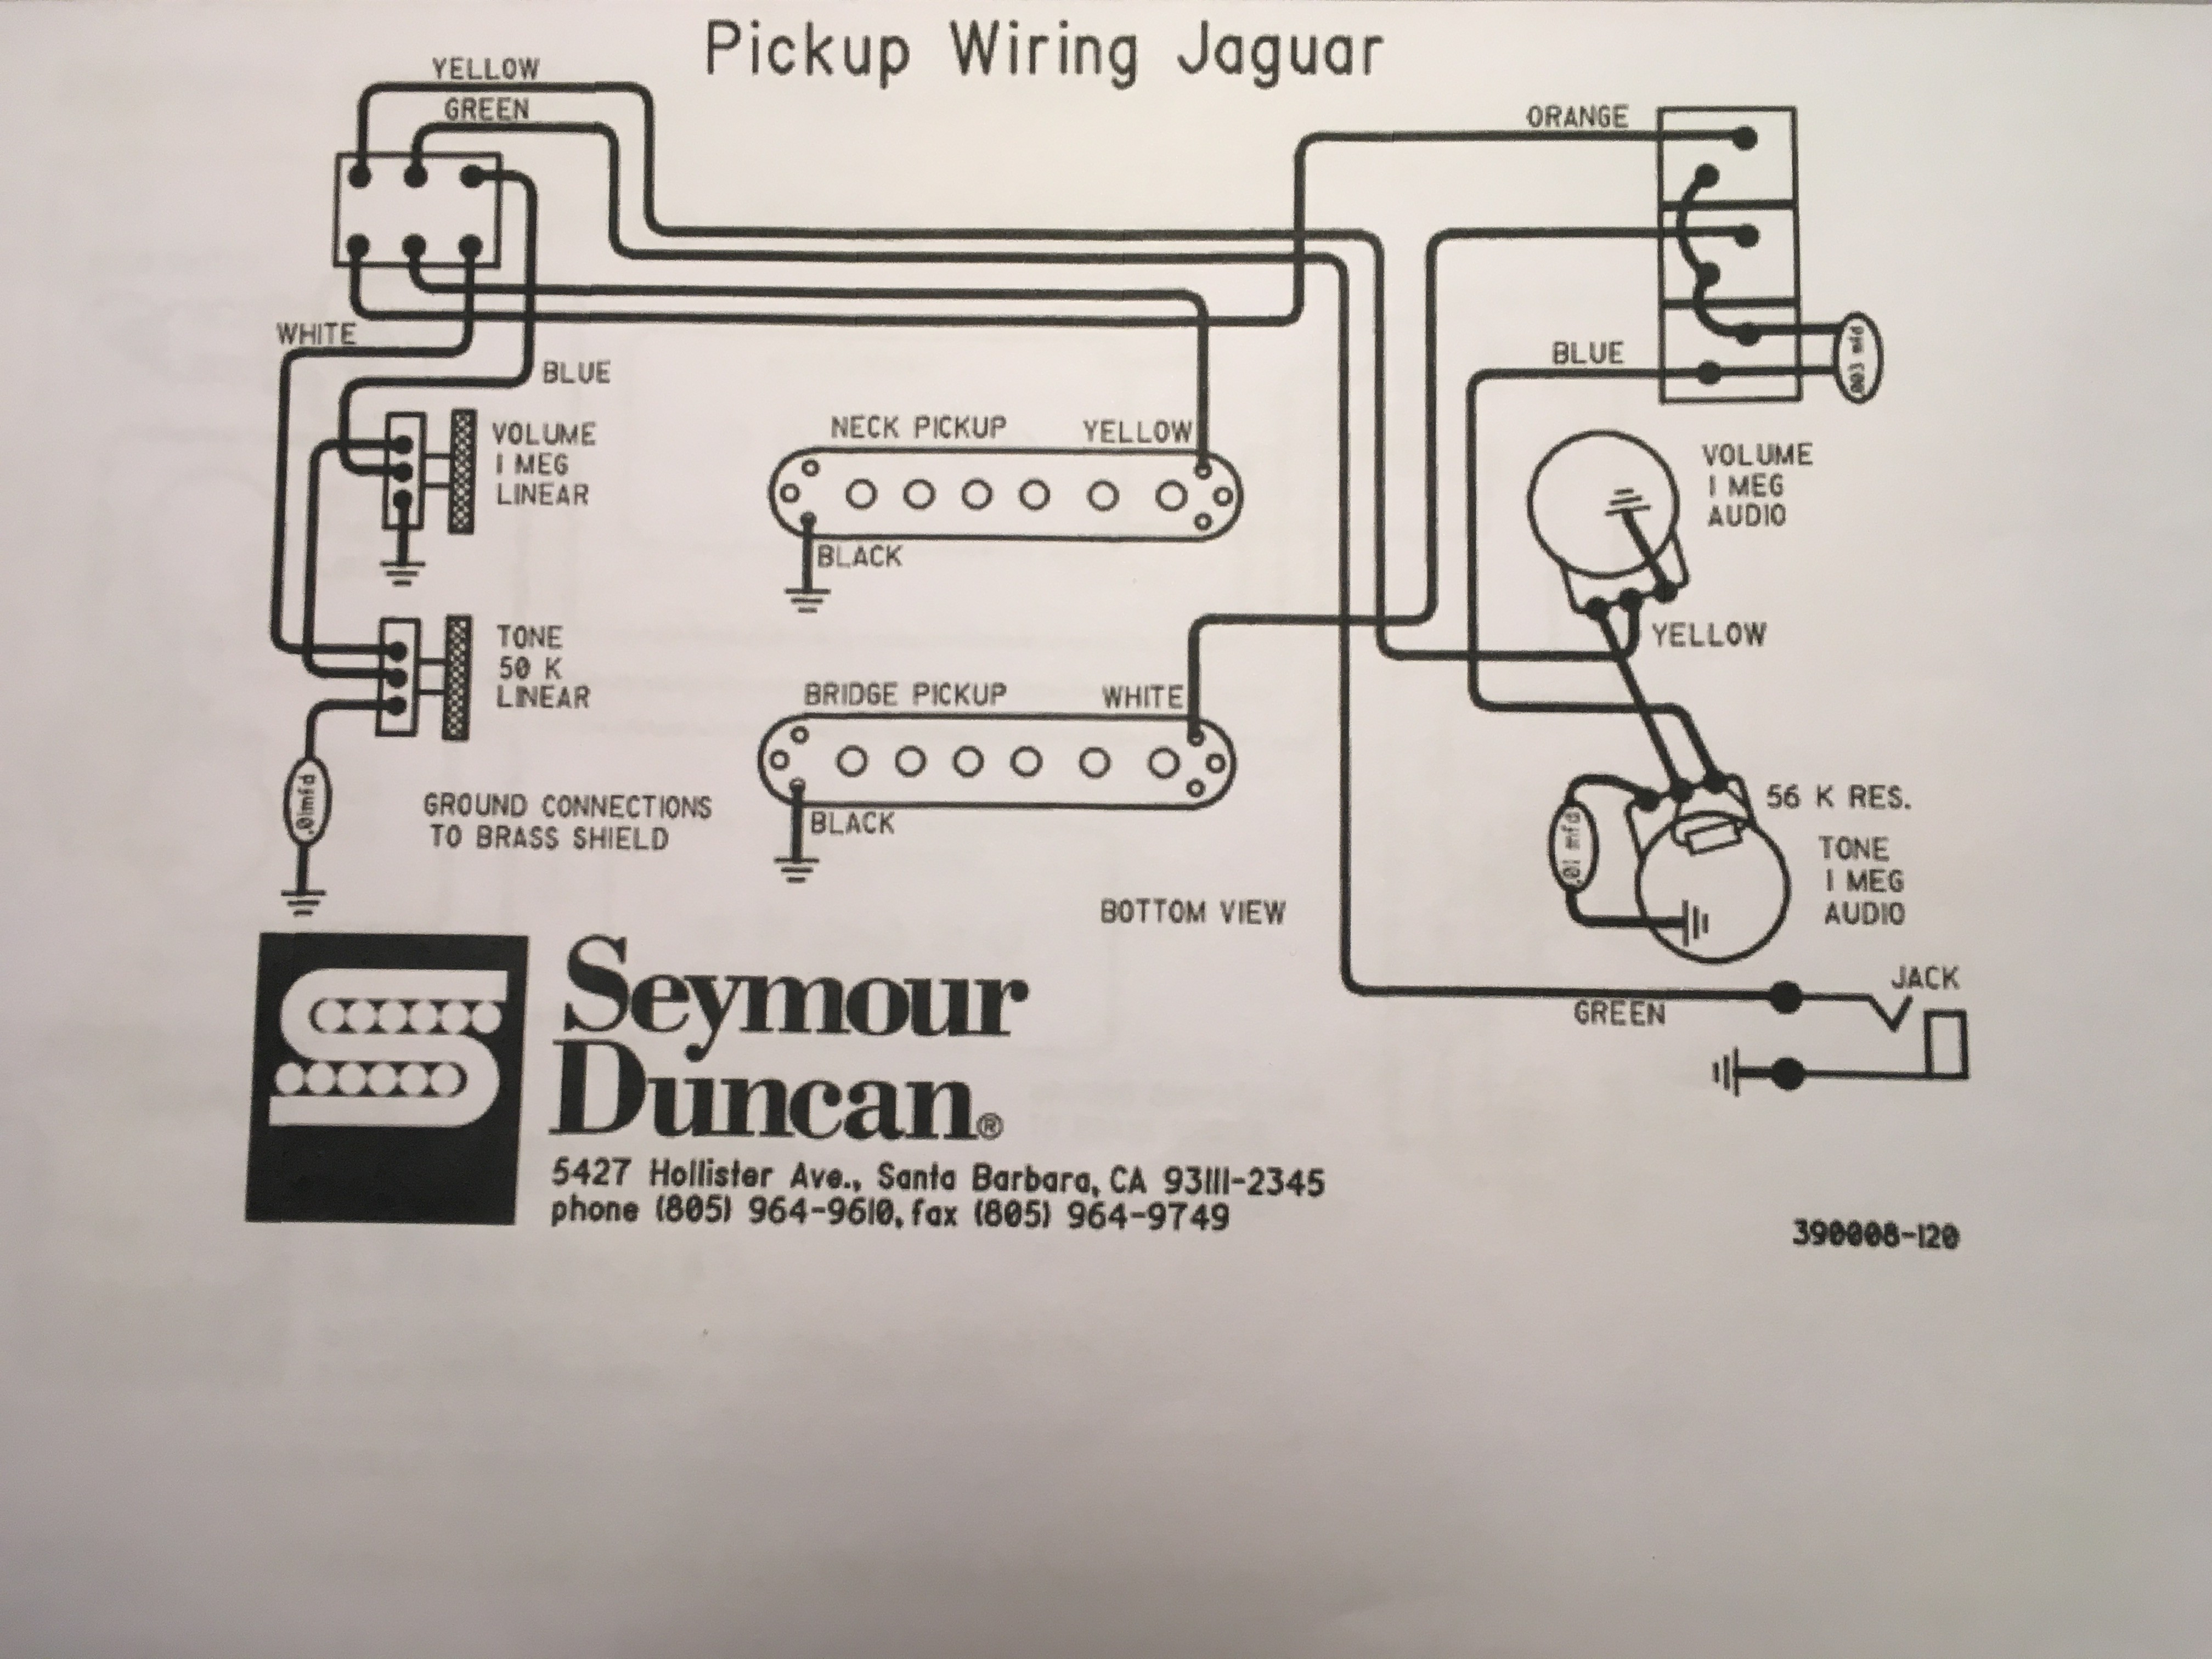 Sensational Jm Amp Wiring Diagram Wiring Diagram Wiring Cloud Xortanetembamohammedshrineorg